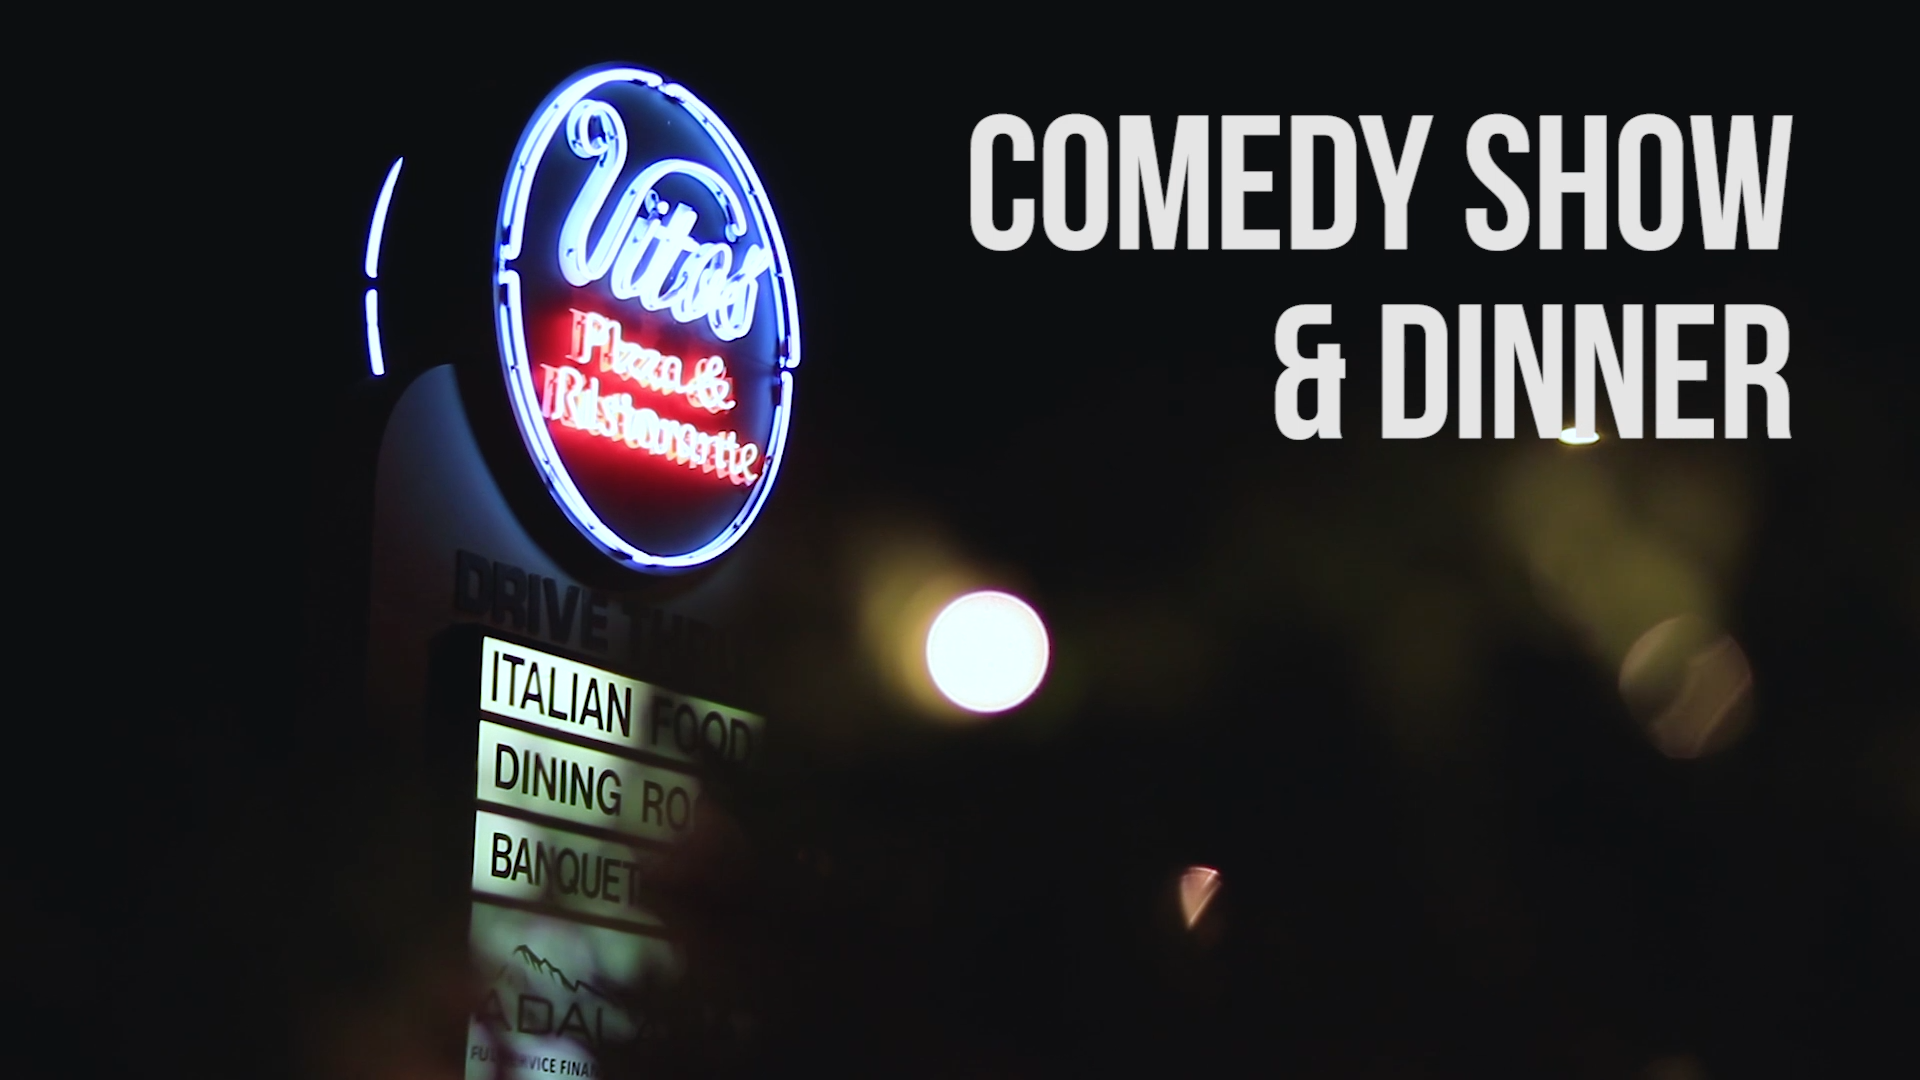 July 27th Comedy Show & Dinner